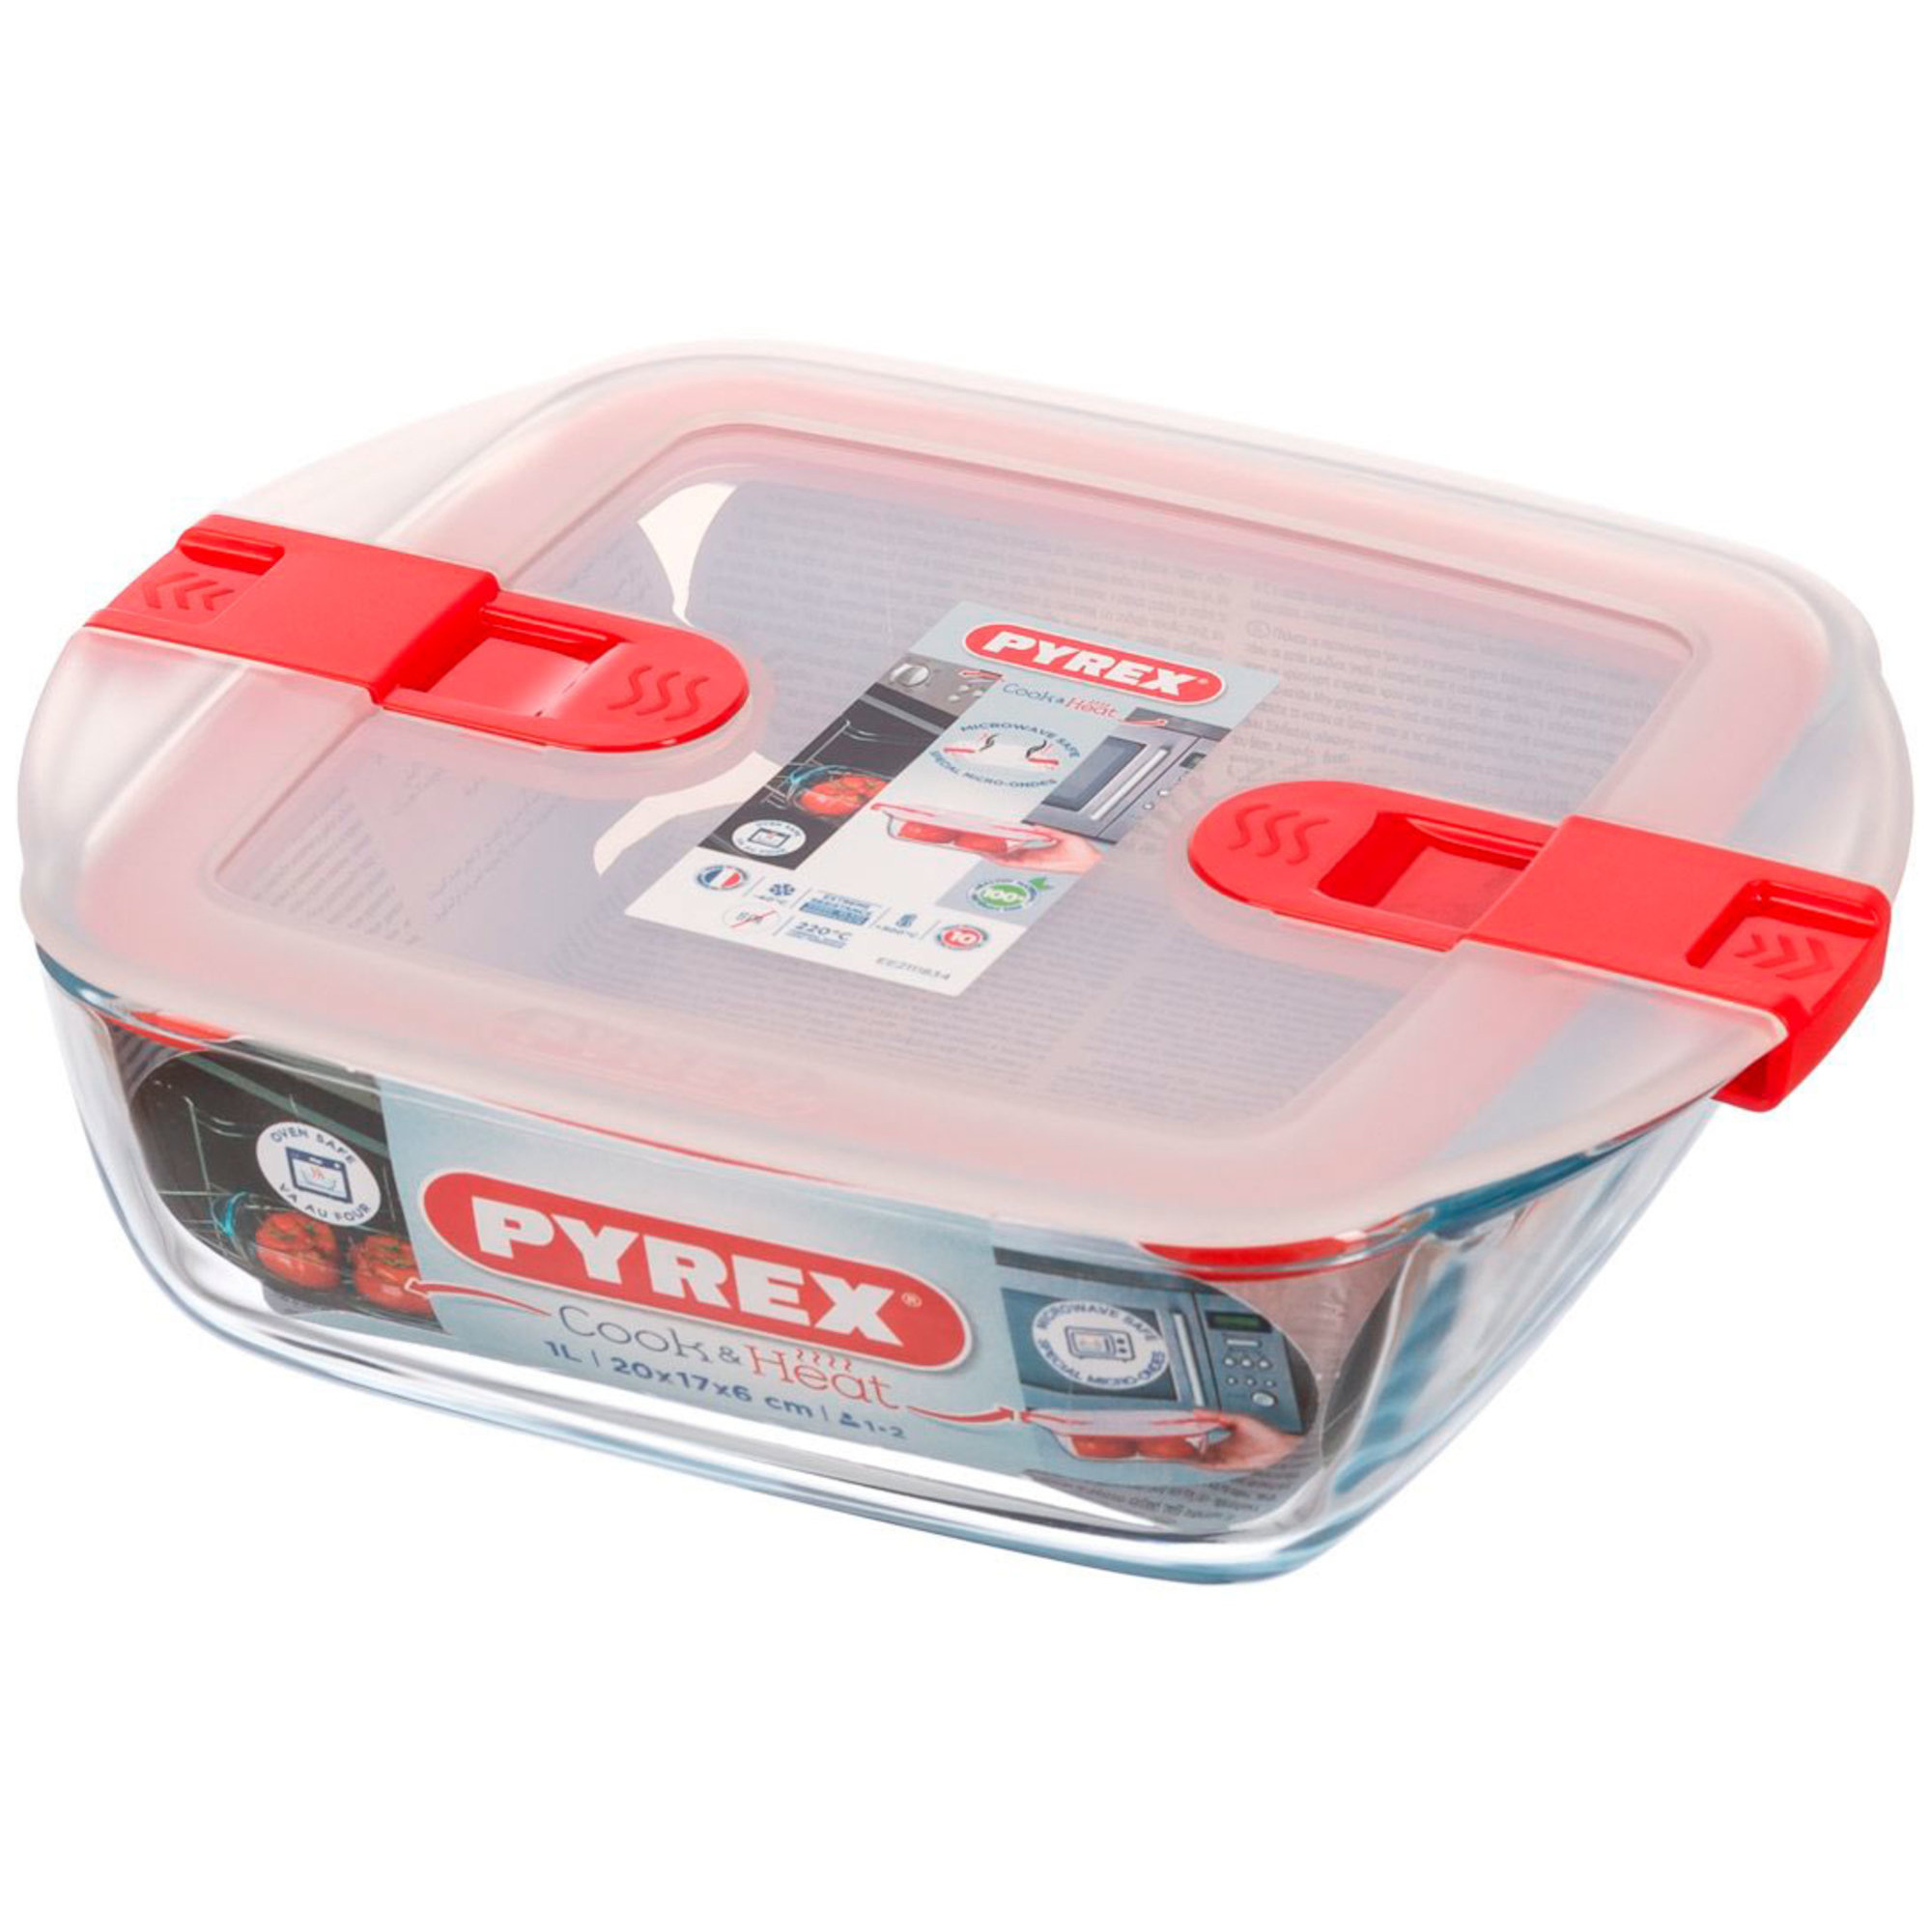 Pyrex Ugnsform Cook and Heat med lock 1 liter